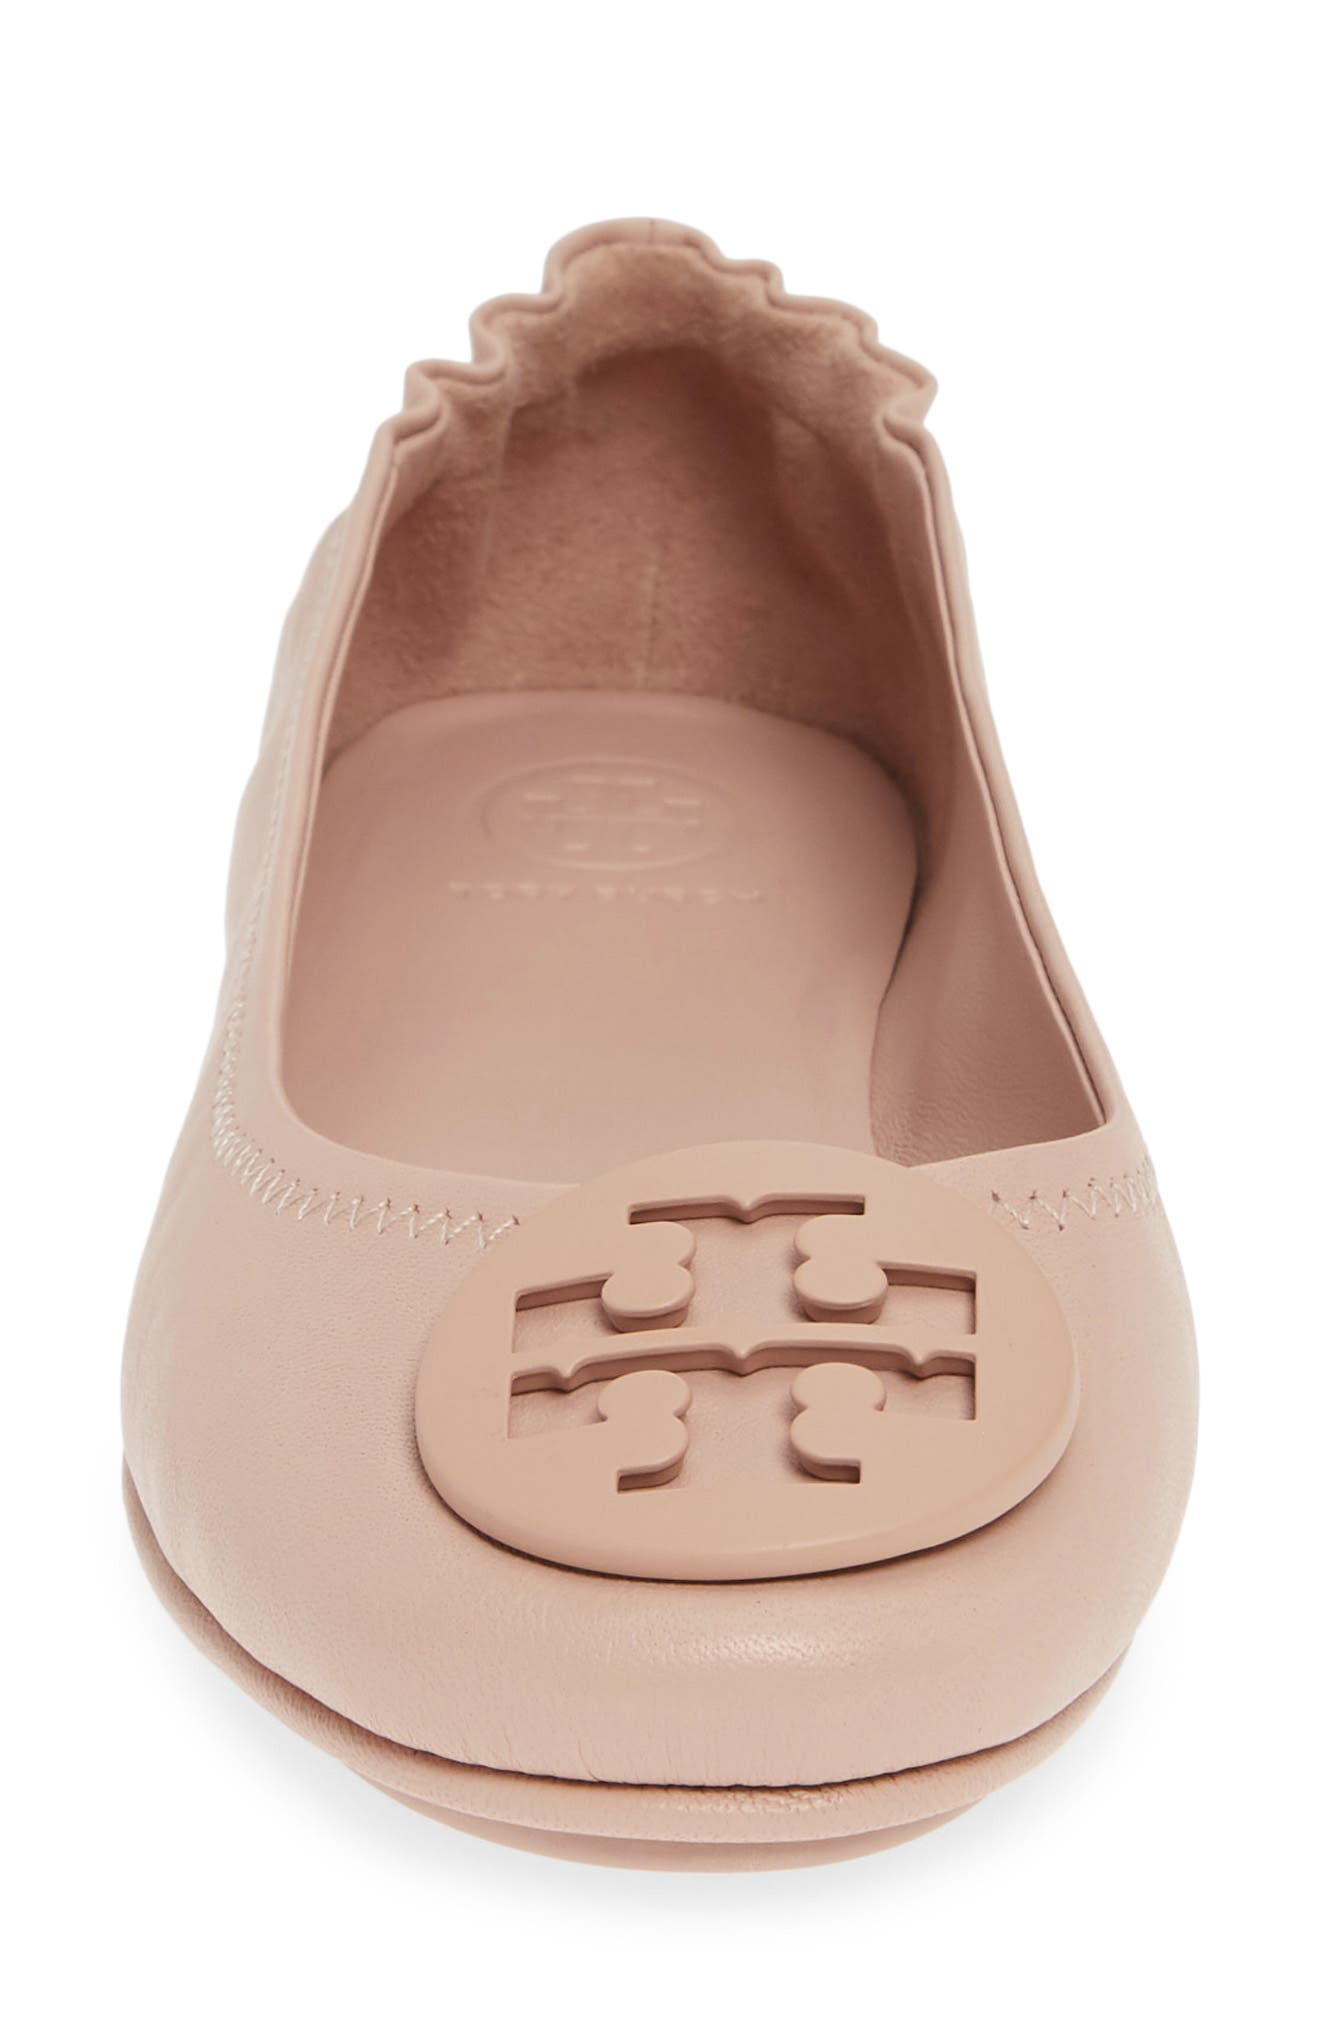 TORY BURCH,                             'Minnie' Travel Ballet Flat,                             Alternate thumbnail 4, color,                             GOAN SAND/ SAND